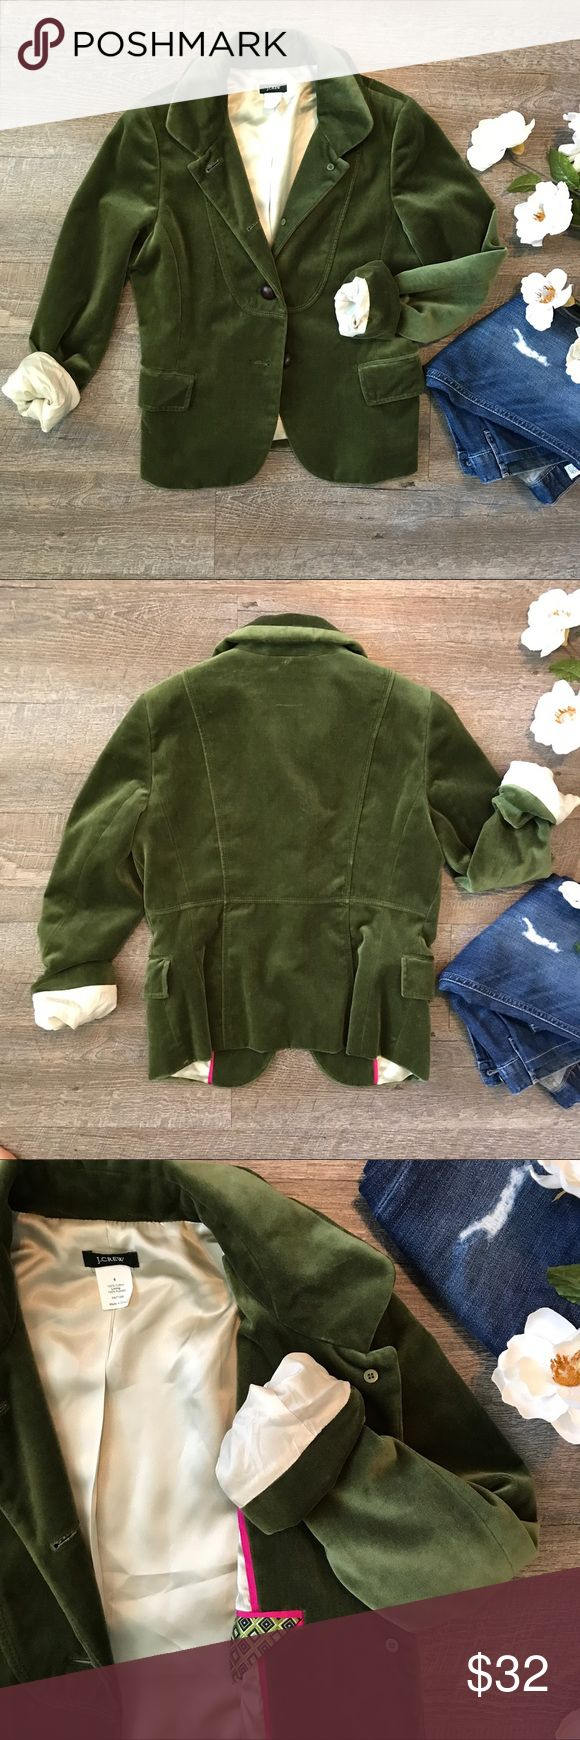 Green Suede J.Crew Blazer Jacket Fun green suede J.Crew Blazer! 100% cotton, lining: acetate. In great condition. A couple of scuffs on the side but may come out if dry-cleaned. Size 6. See images for measurements. J. Crew Jackets & Coats Blazers